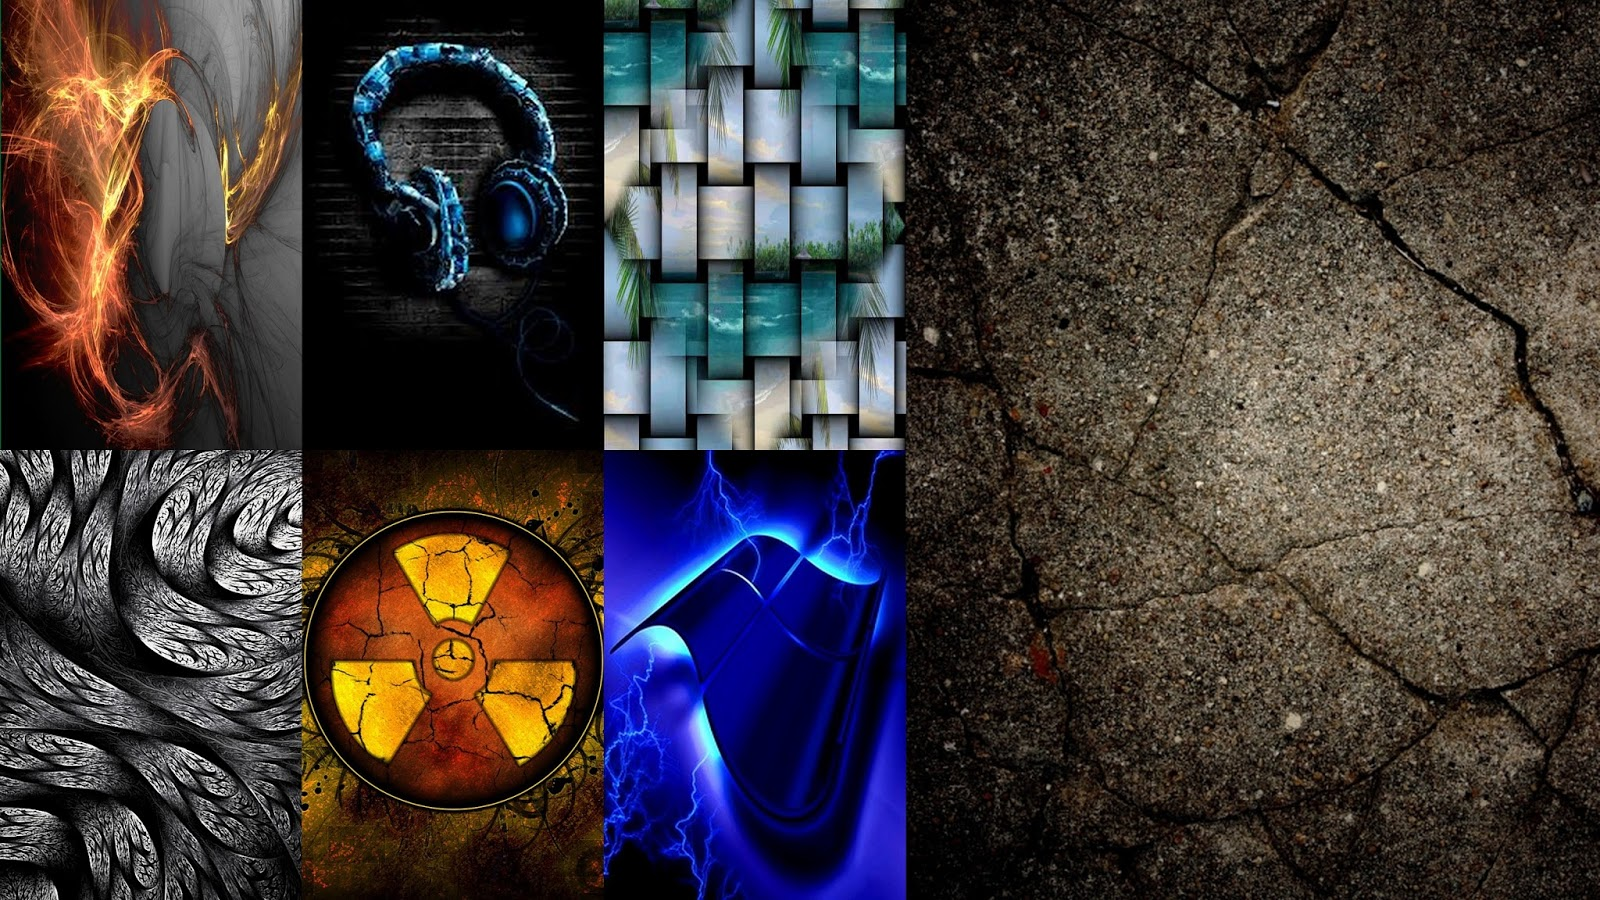 Hd wallpaper pack download - Download 480x800 Abstract Hd Wallpapers Pack 2 Pack Contains 150 Hd